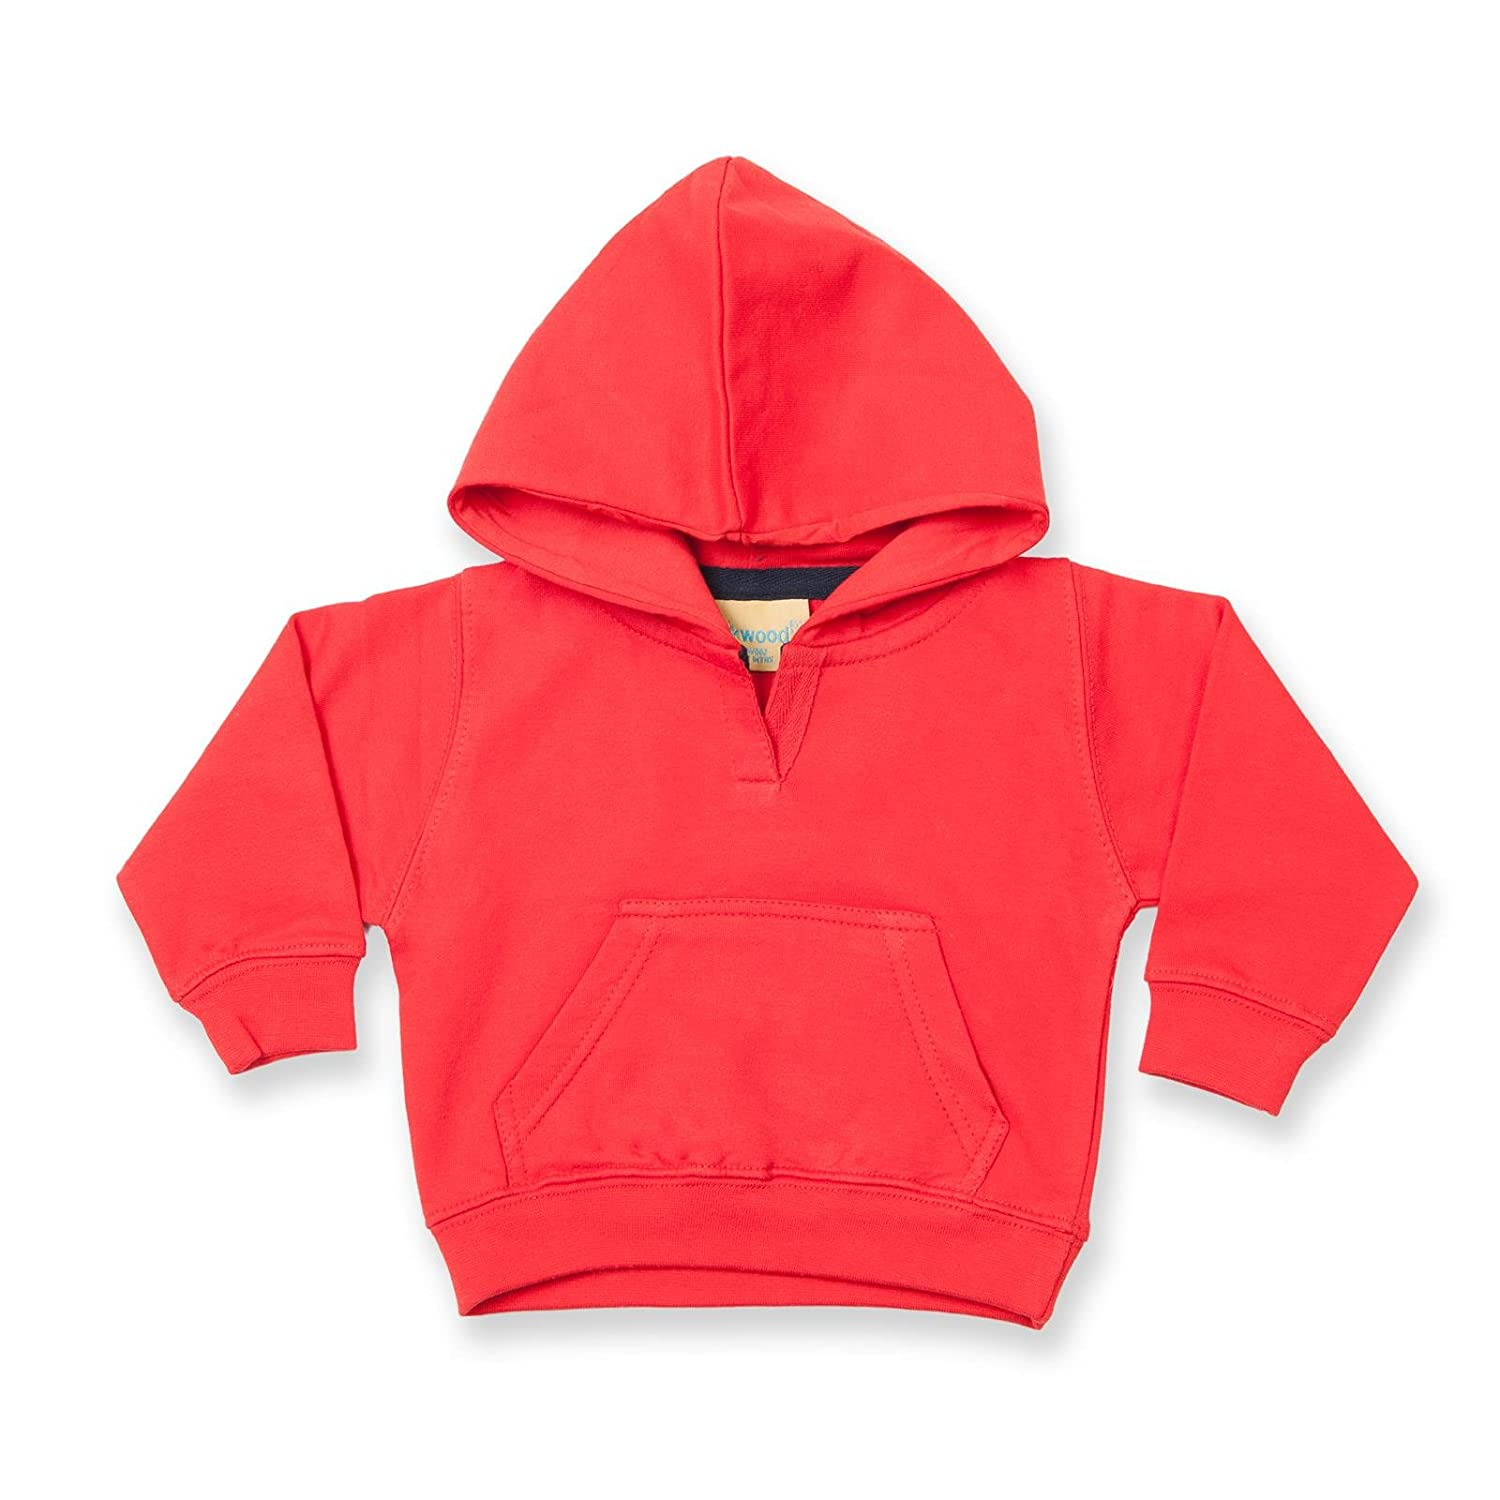 New Baby Infant Kids Larkwood Hoodie Sweatshirt